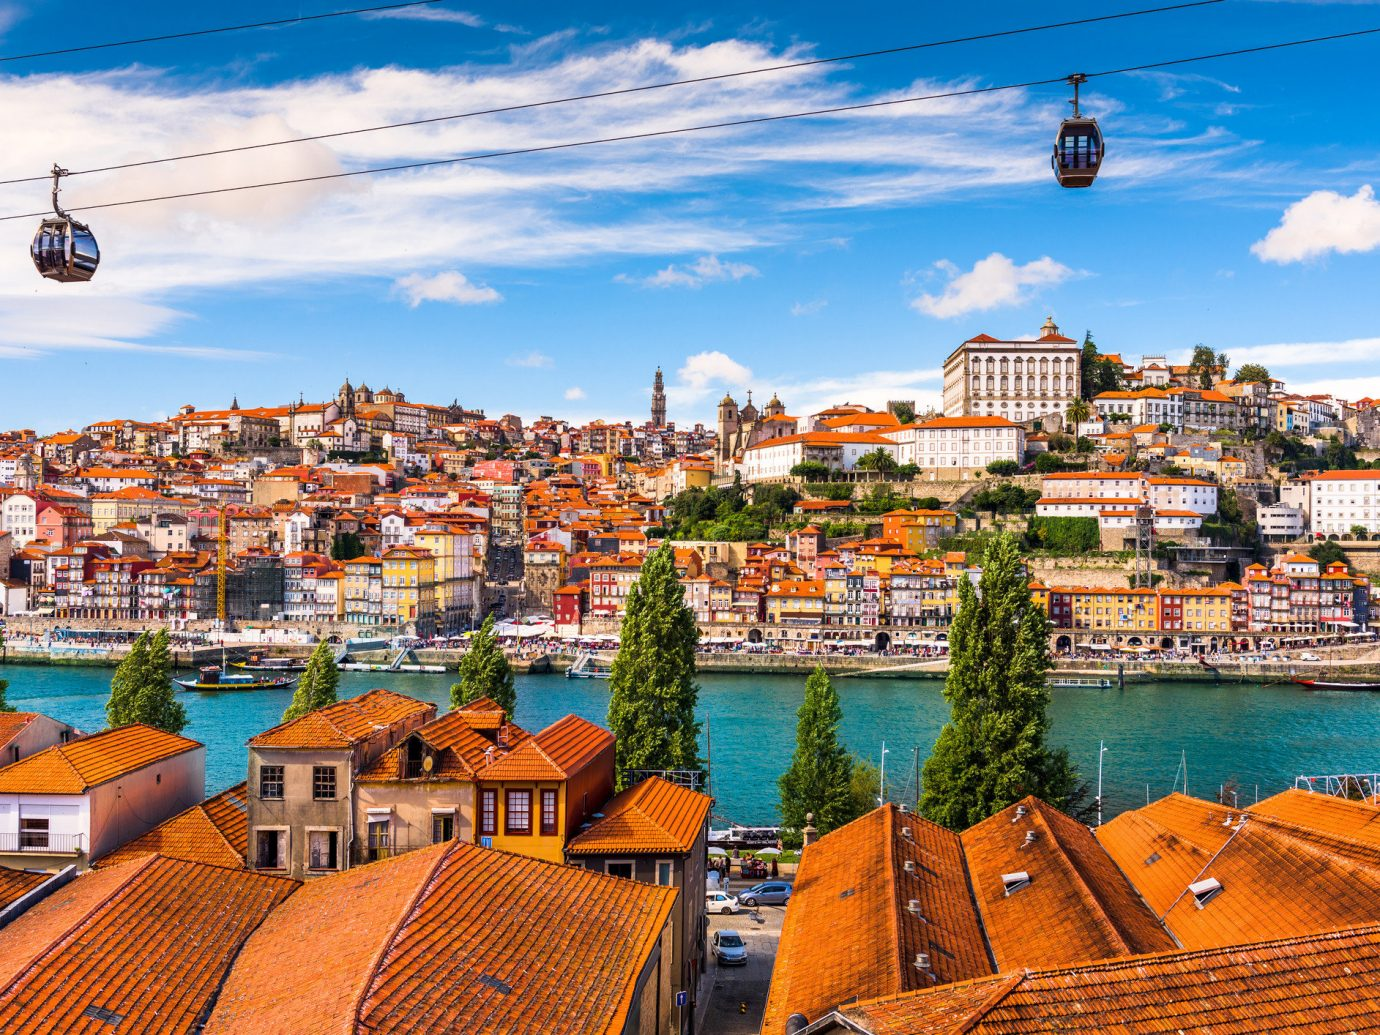 Trip Ideas sky outdoor Town geographical feature cityscape Sea vacation human settlement scene Coast tourism Harbor Beach skyline travel port several